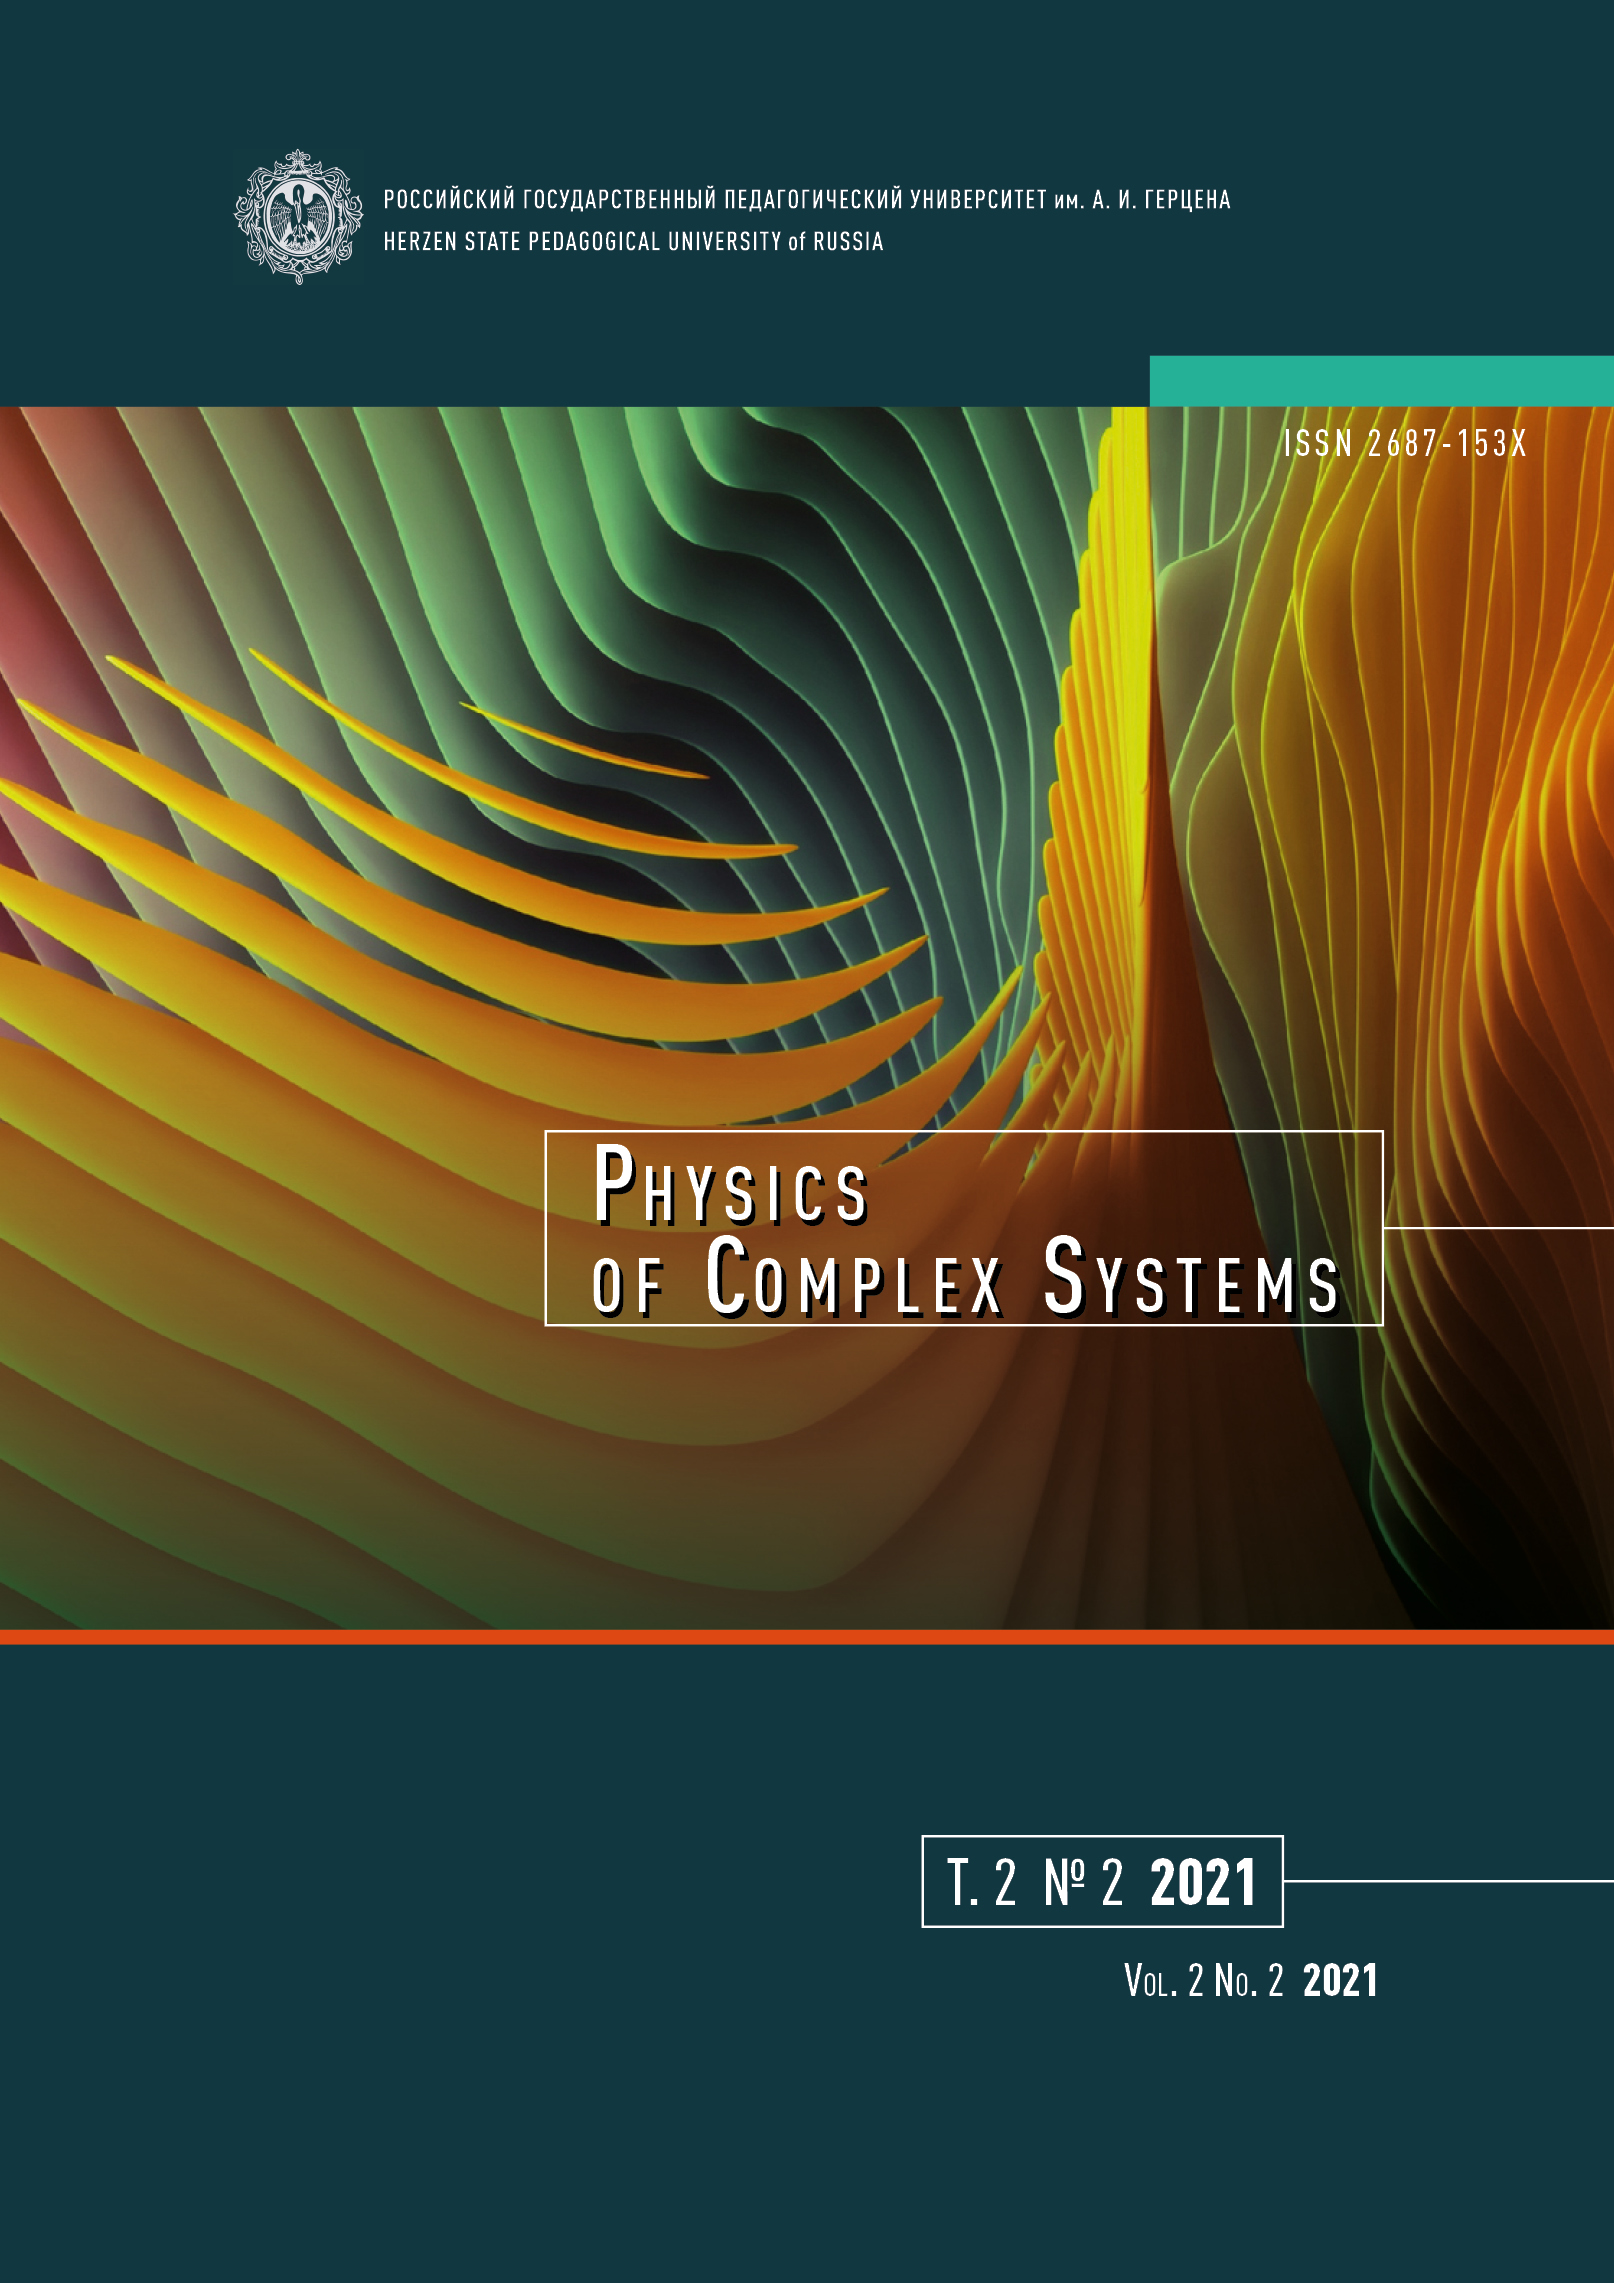 """Cover of the journal """"Physics of Complex Systems"""" (vol. 2, no. 2)"""